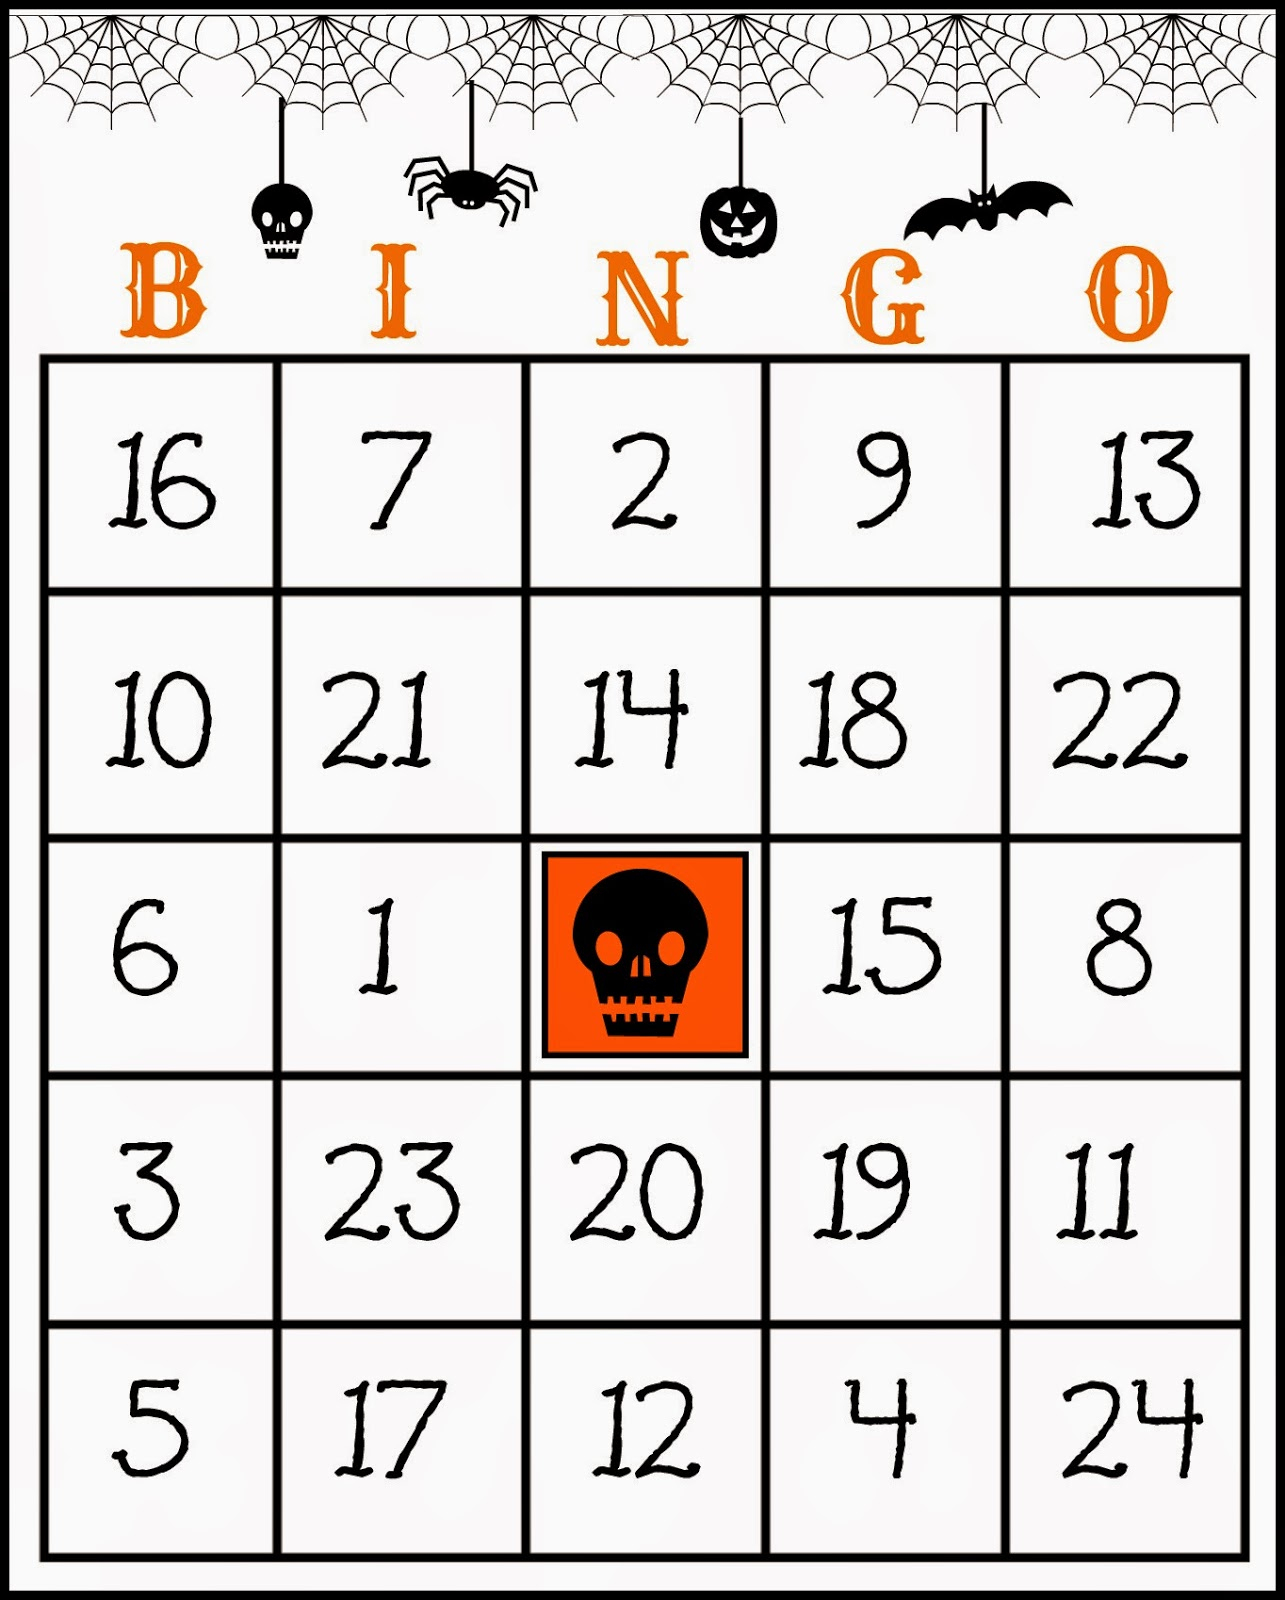 Crafty In Crosby: Free Printable Halloween Bingo Game - Free Printable Bingo Cards With Numbers